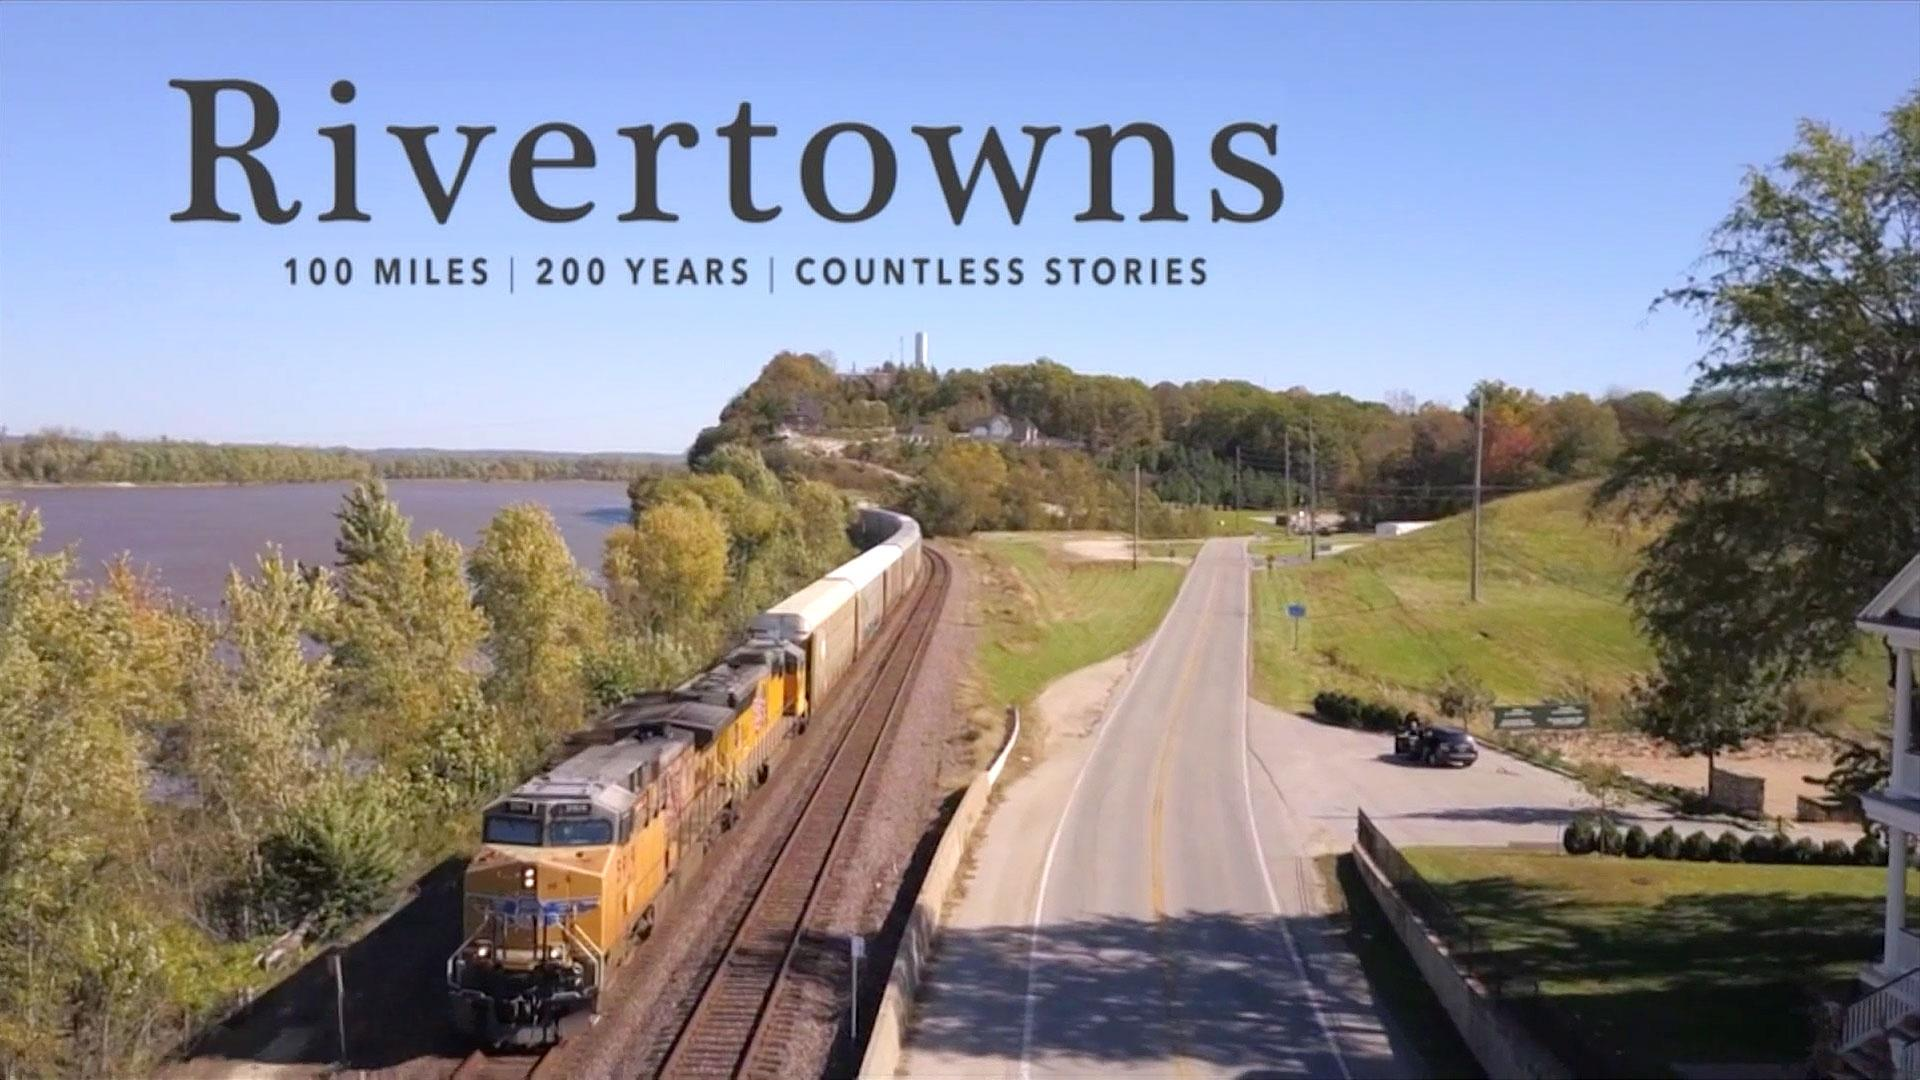 Rivertowns: 100 Miles, 200 Years, Countless Stories